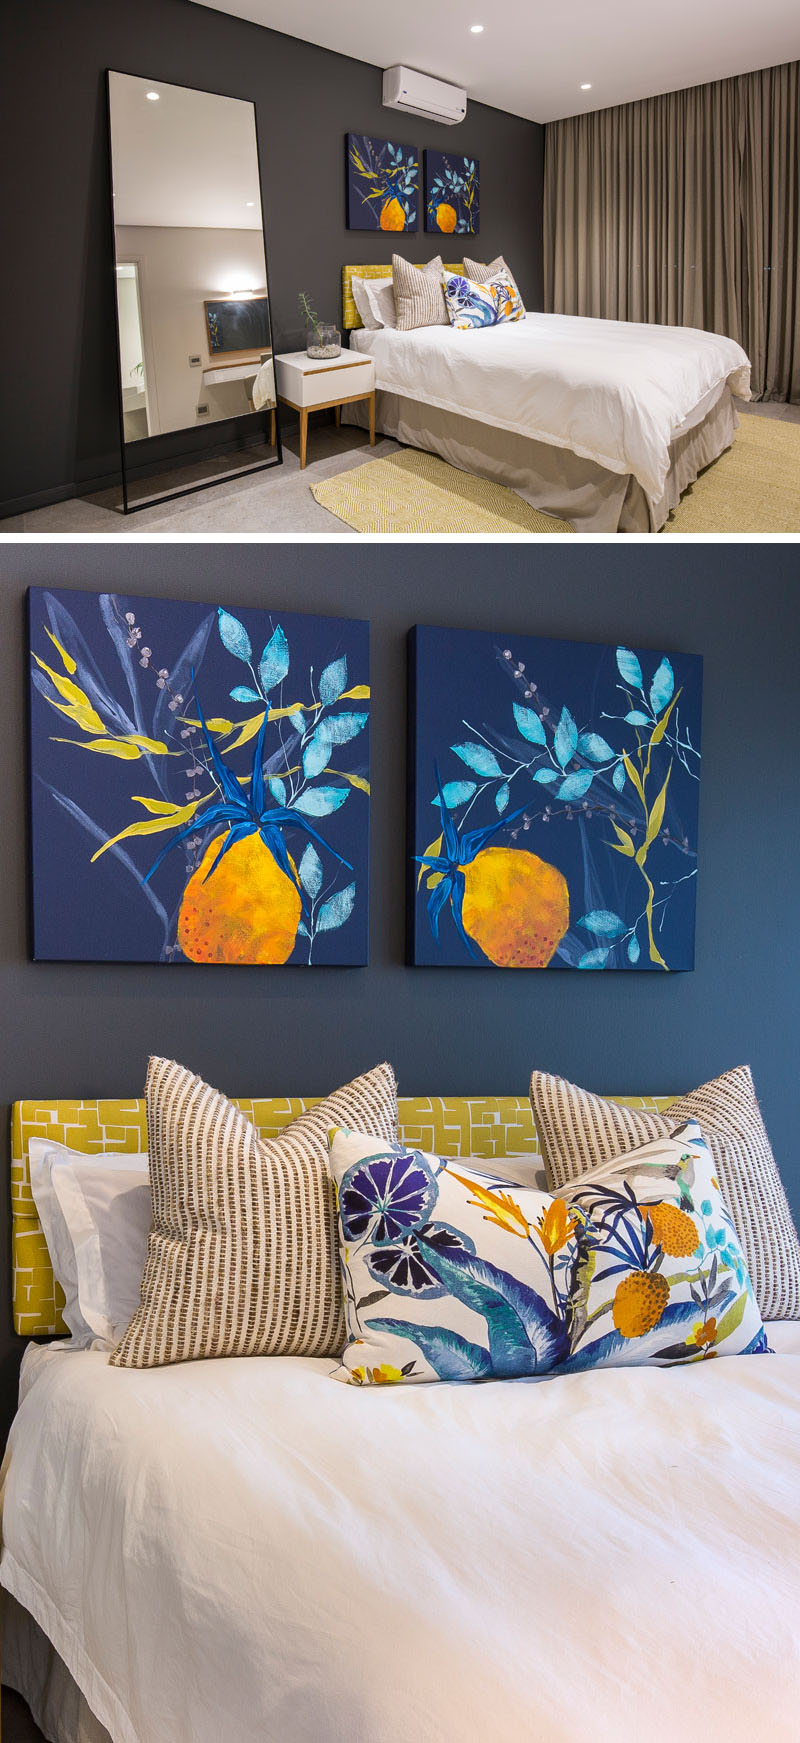 Colorful paintings, bright fabrics on the bed, and the light green headboard stand out against the dark blue accent wall in this modern bedroom. The large mirror beside the bed, reflects the ceiling lights used in this room.